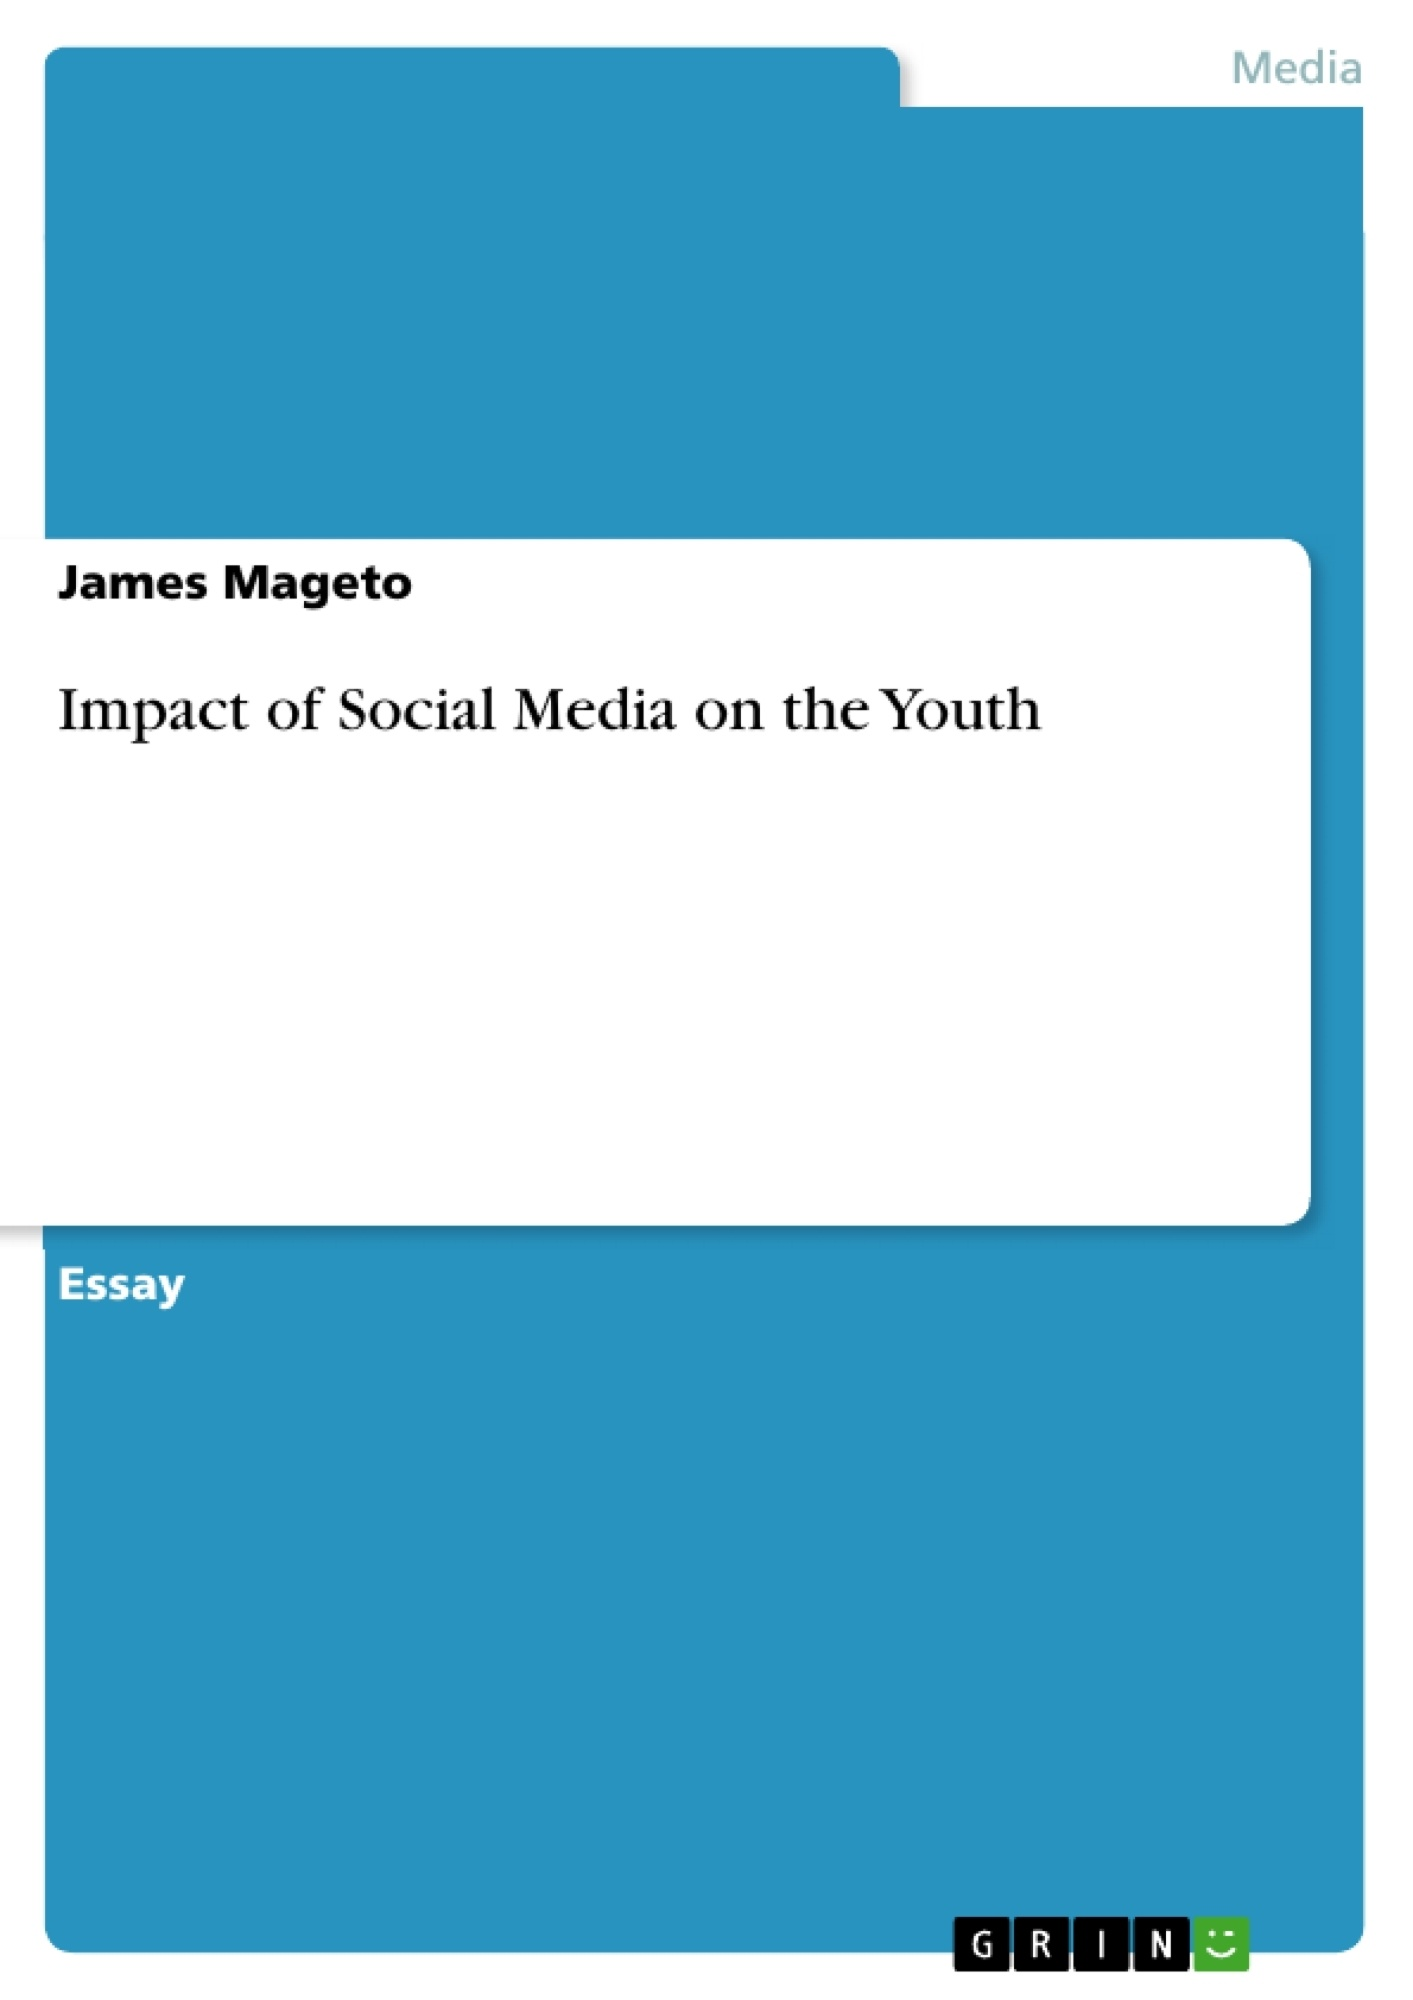 GRIN - Impact of Social Media on the Youth